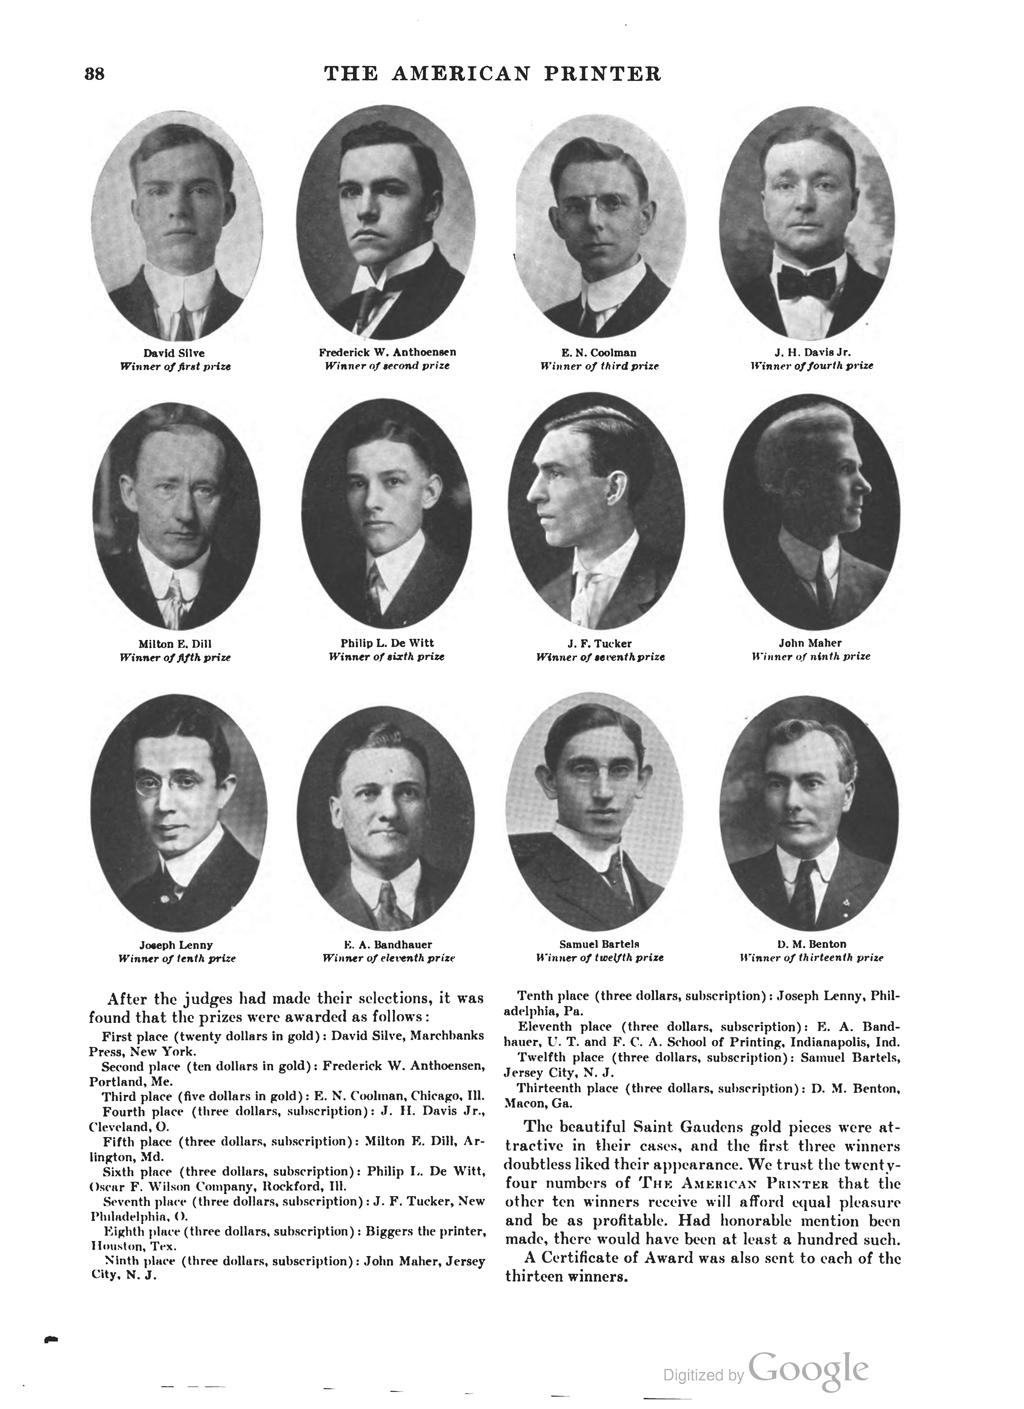 Contest winners (1916). Samuel Bartels is on the bottom line, second from right.